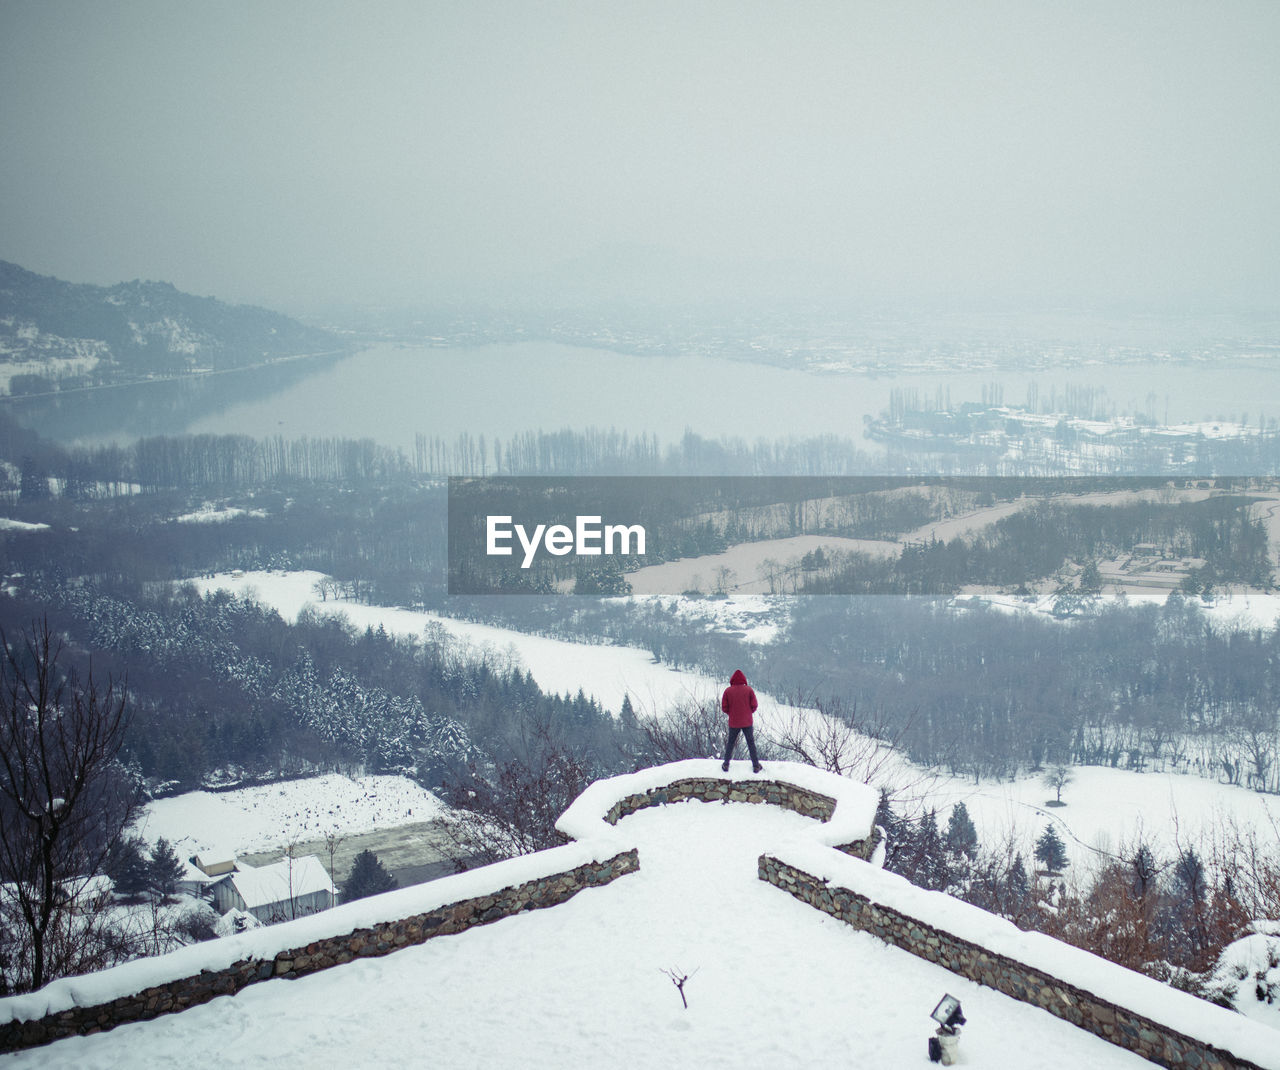 Rear view of person standing on railing against sky during winter